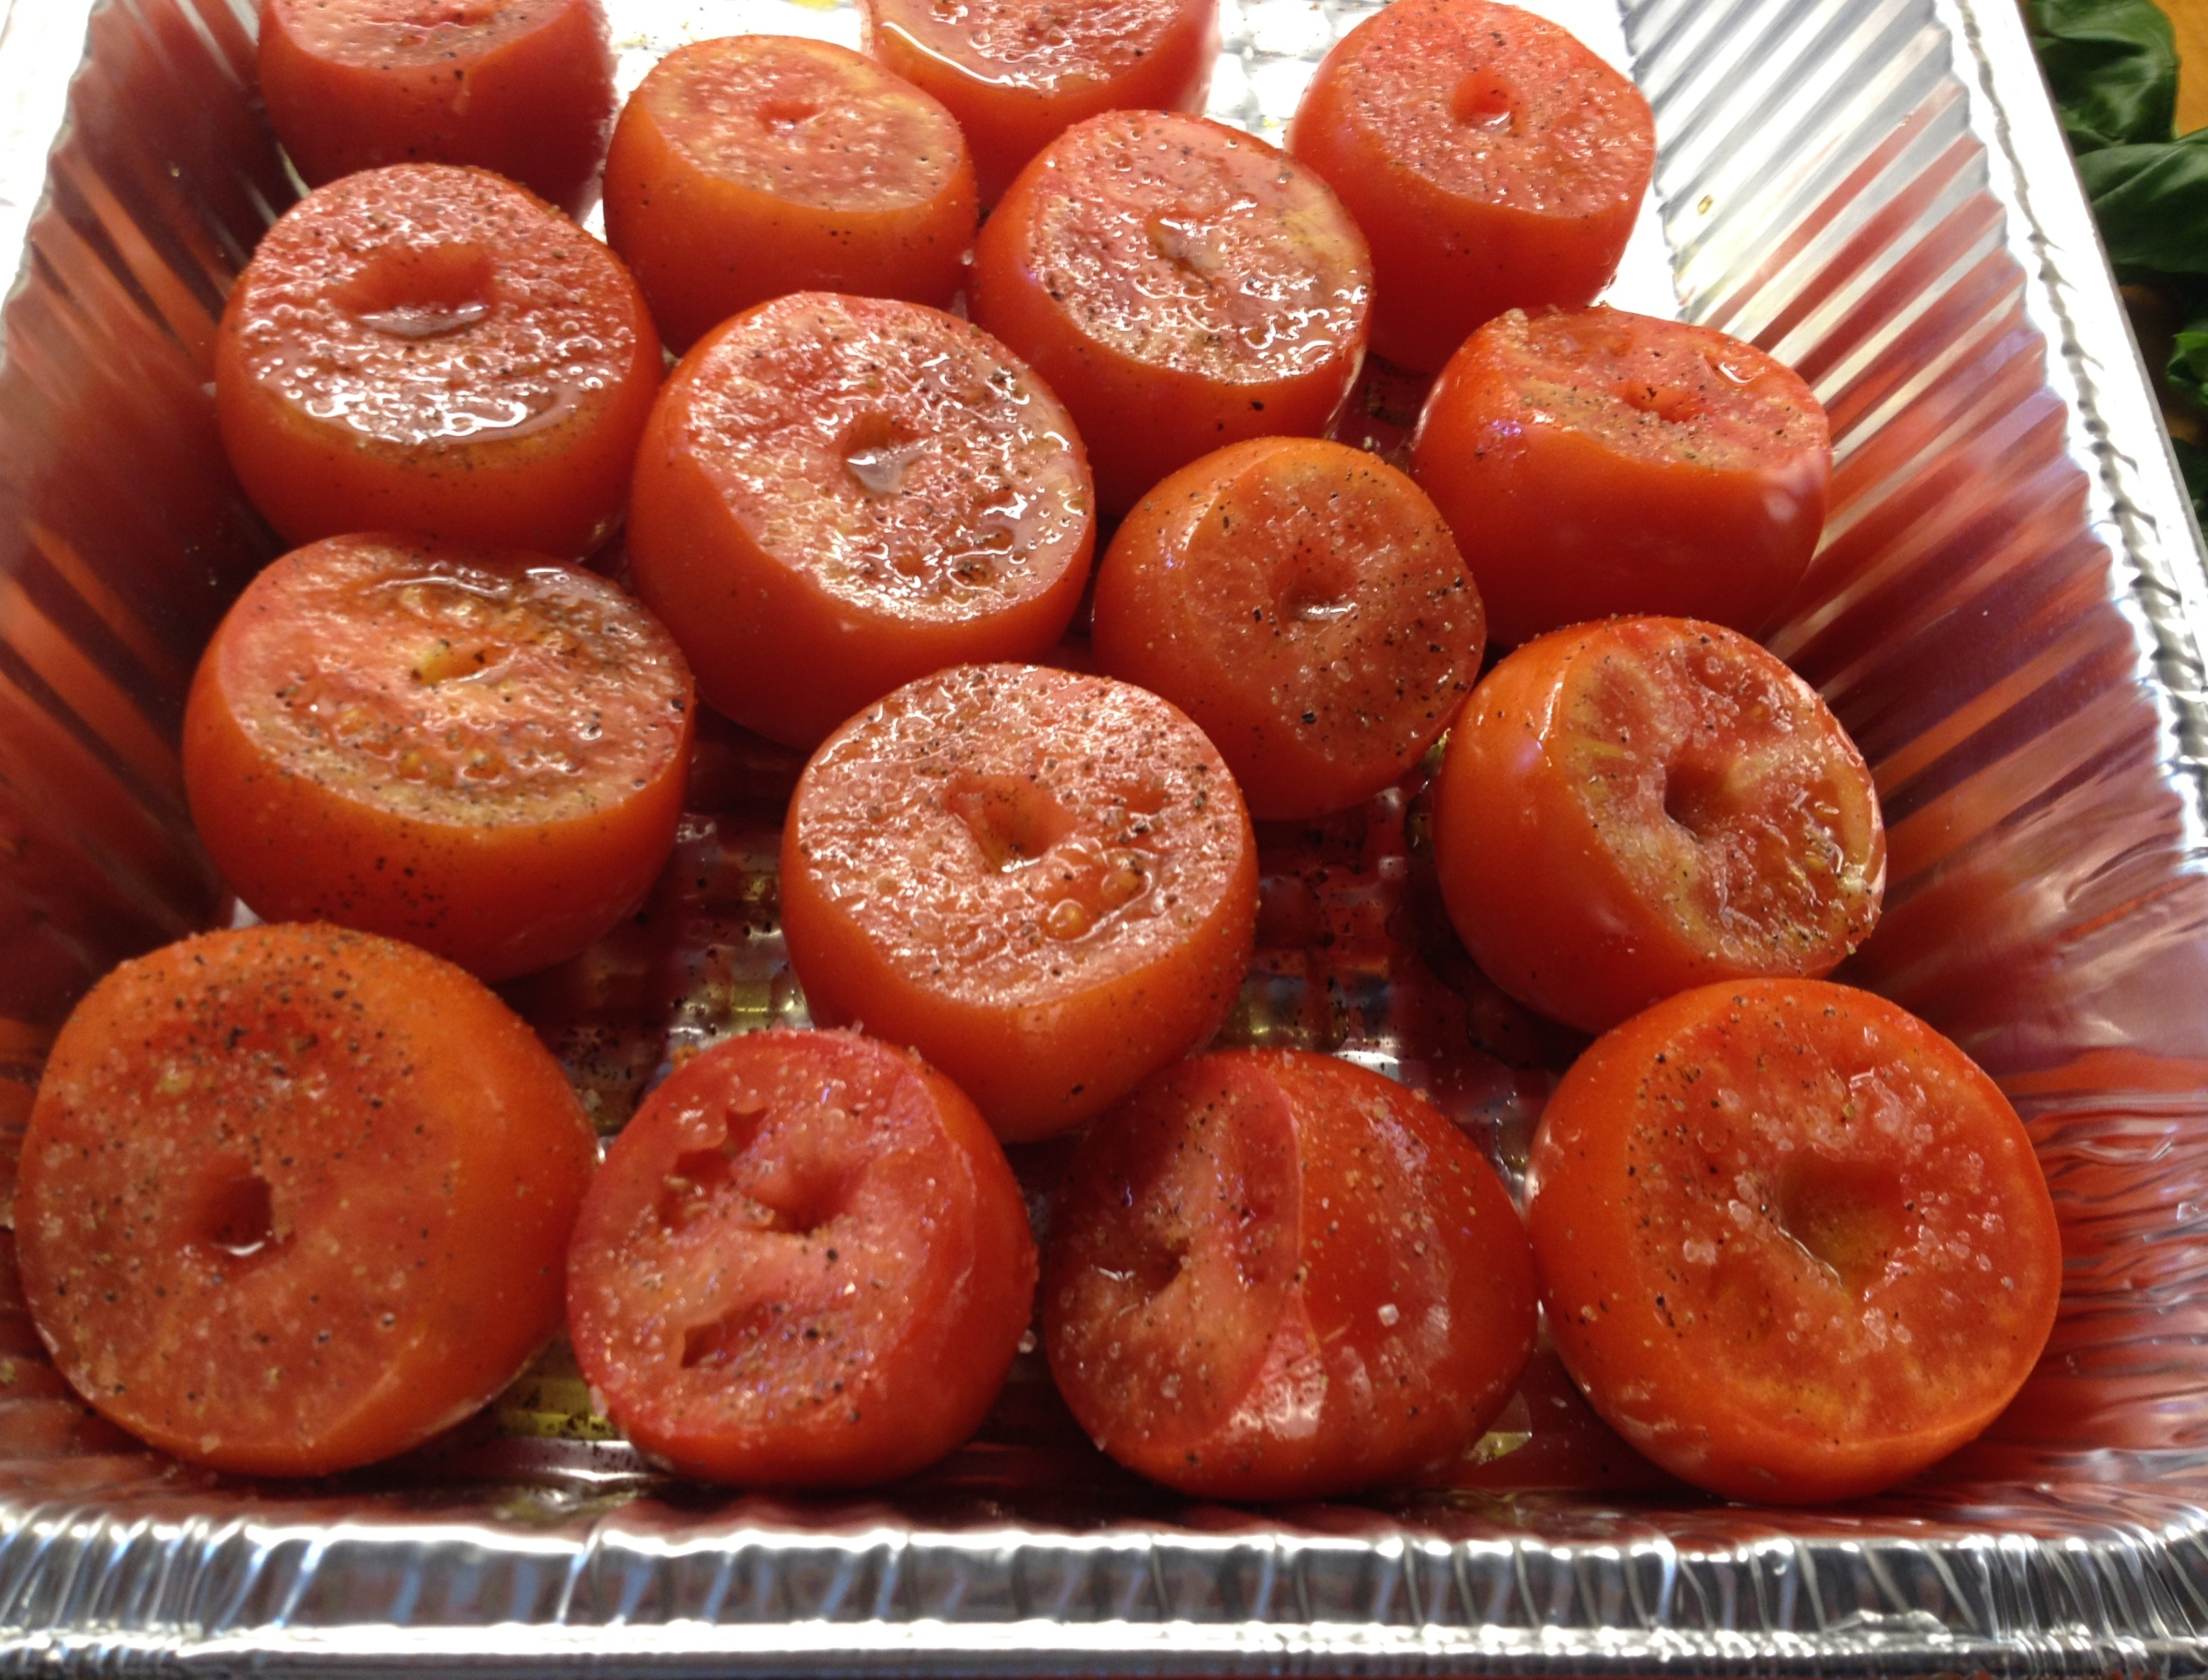 Tomatoes in an aluminum pan.